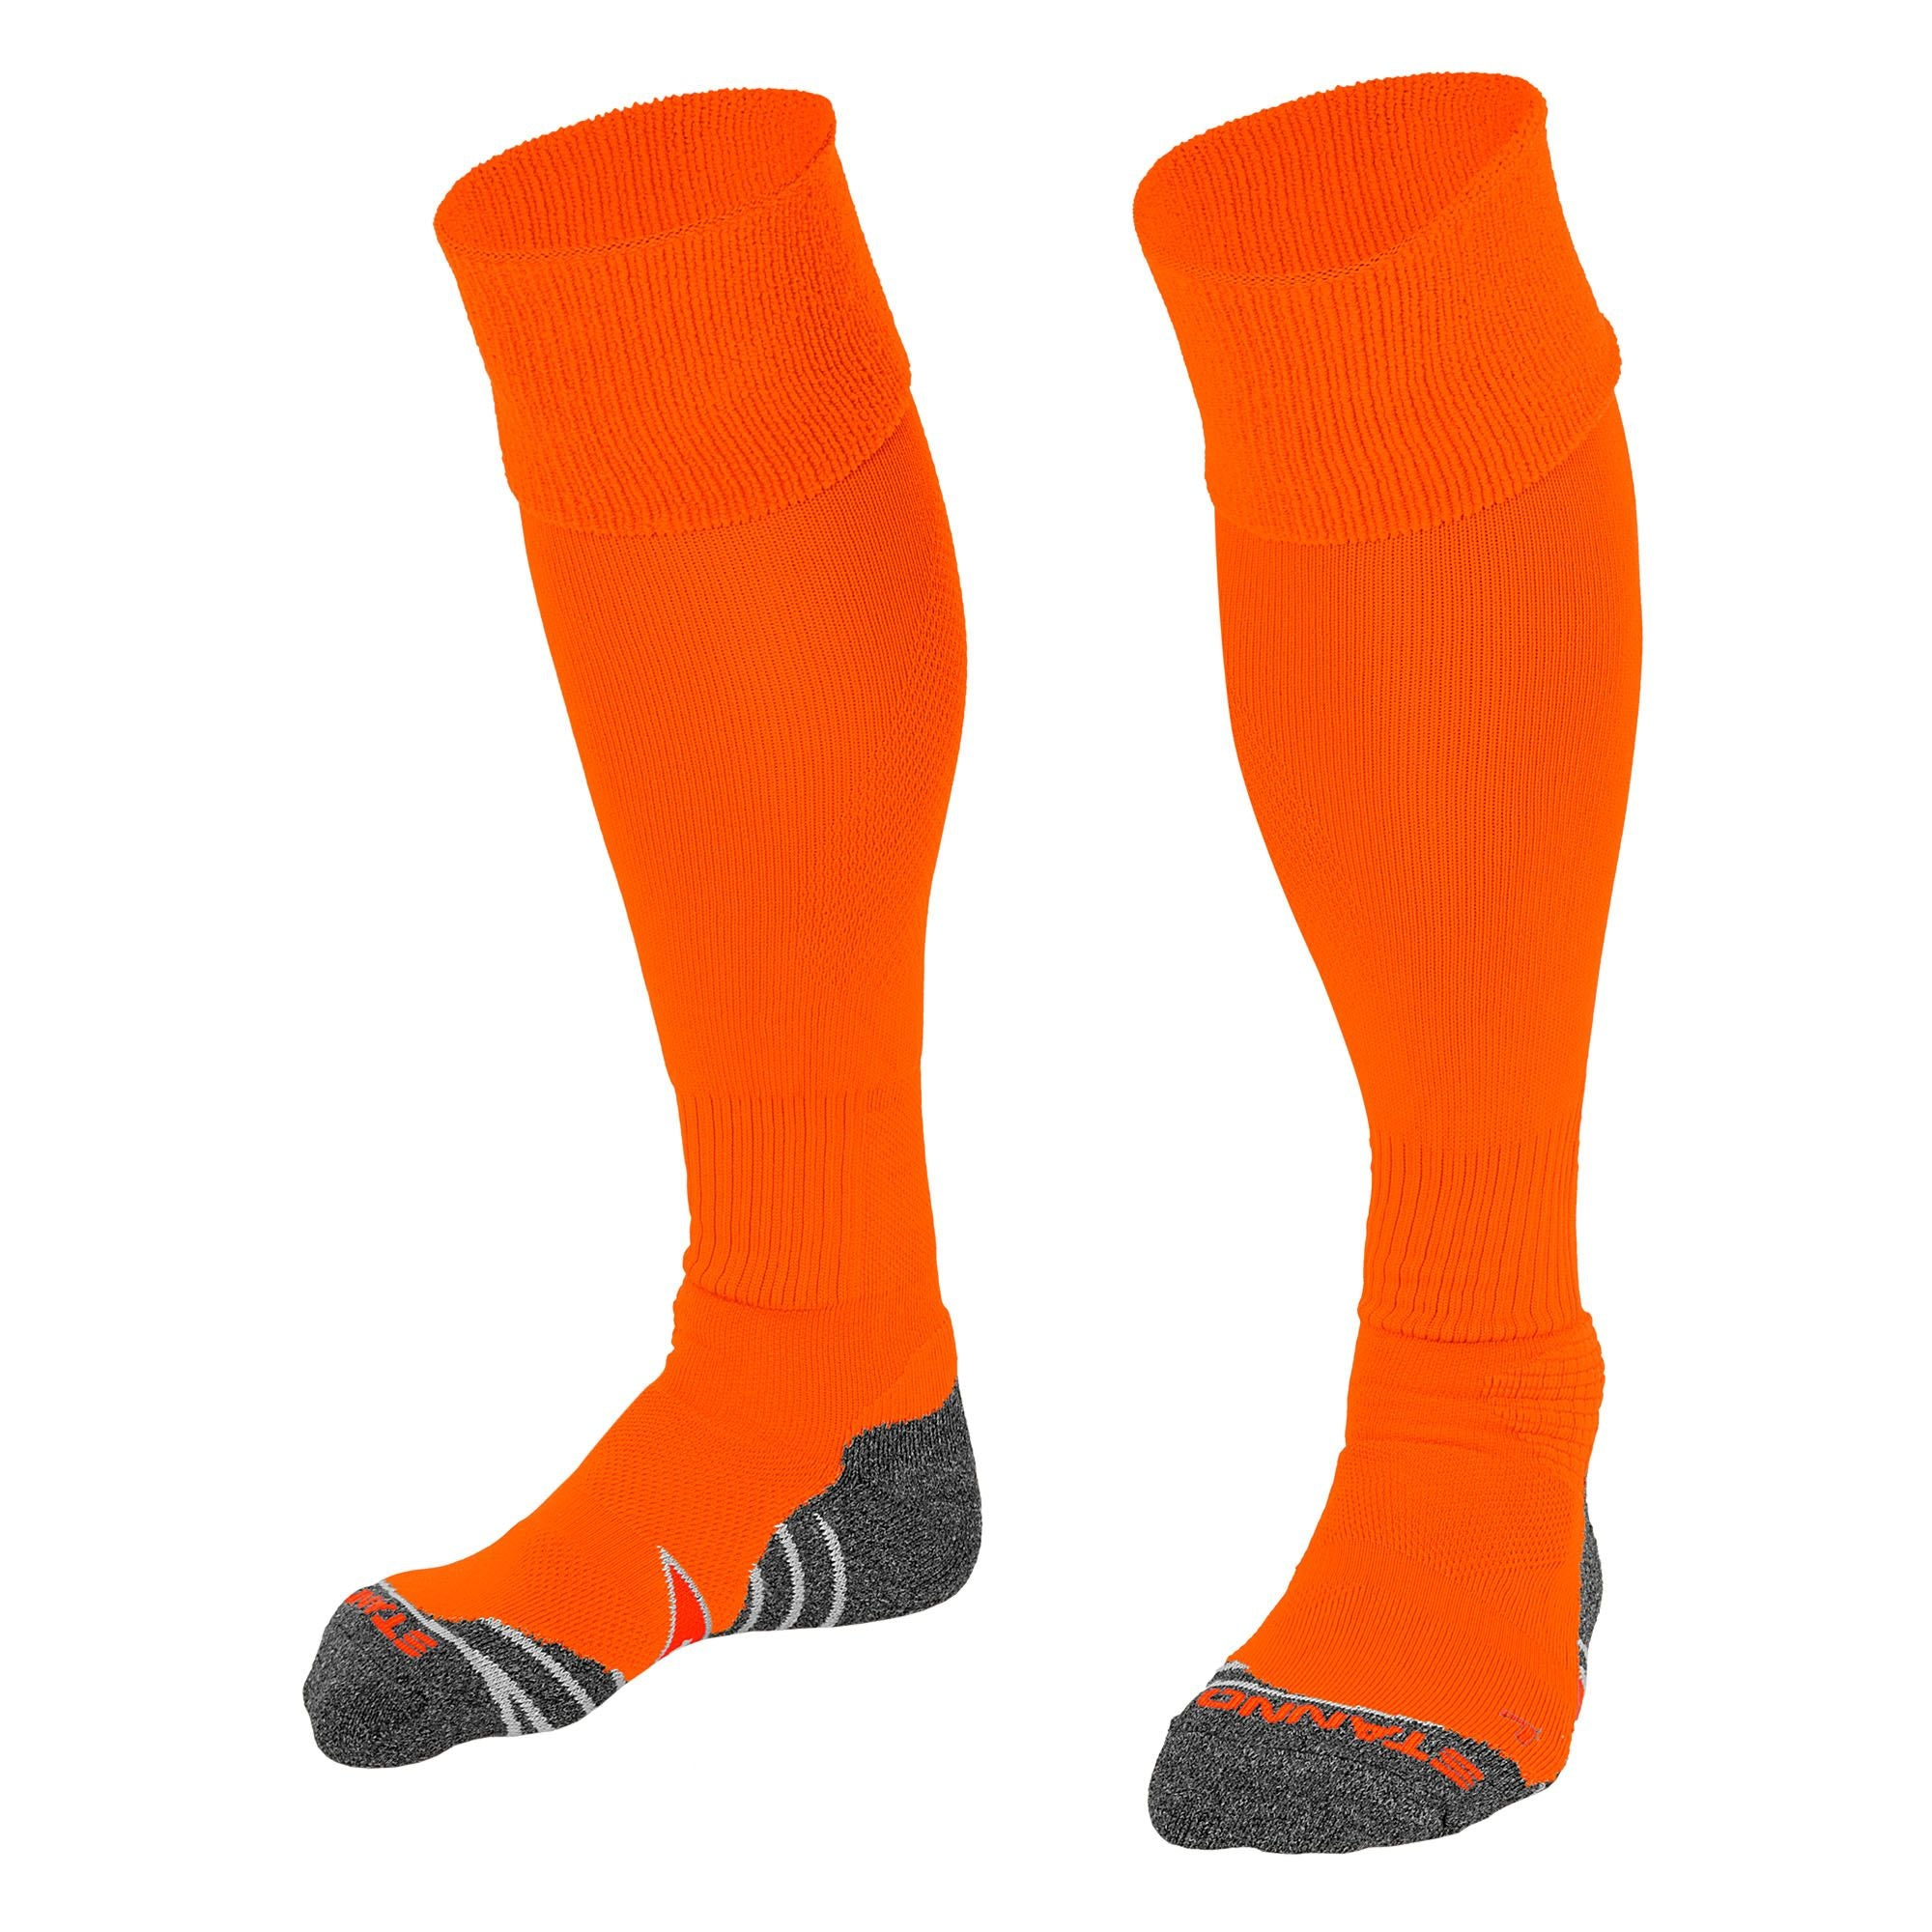 Stanno Uni Sock II football sock in orange with grey, white and orange sole